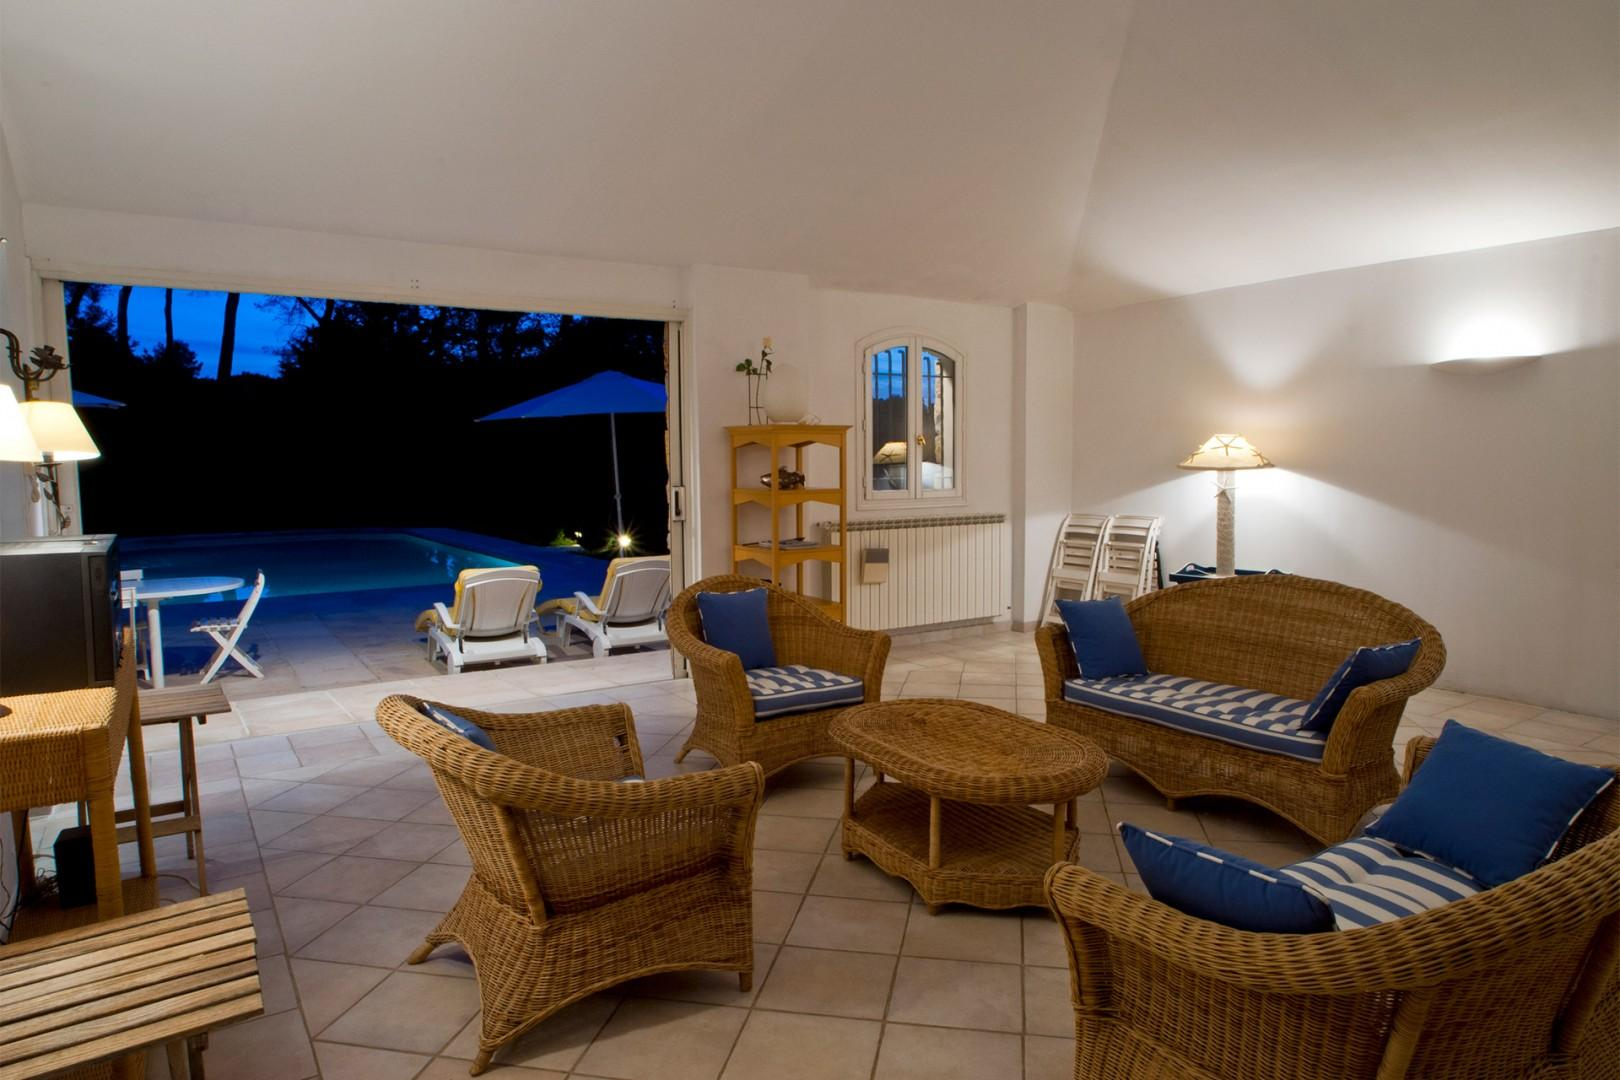 Comfortable pool house with lounge area perfect for entertaining